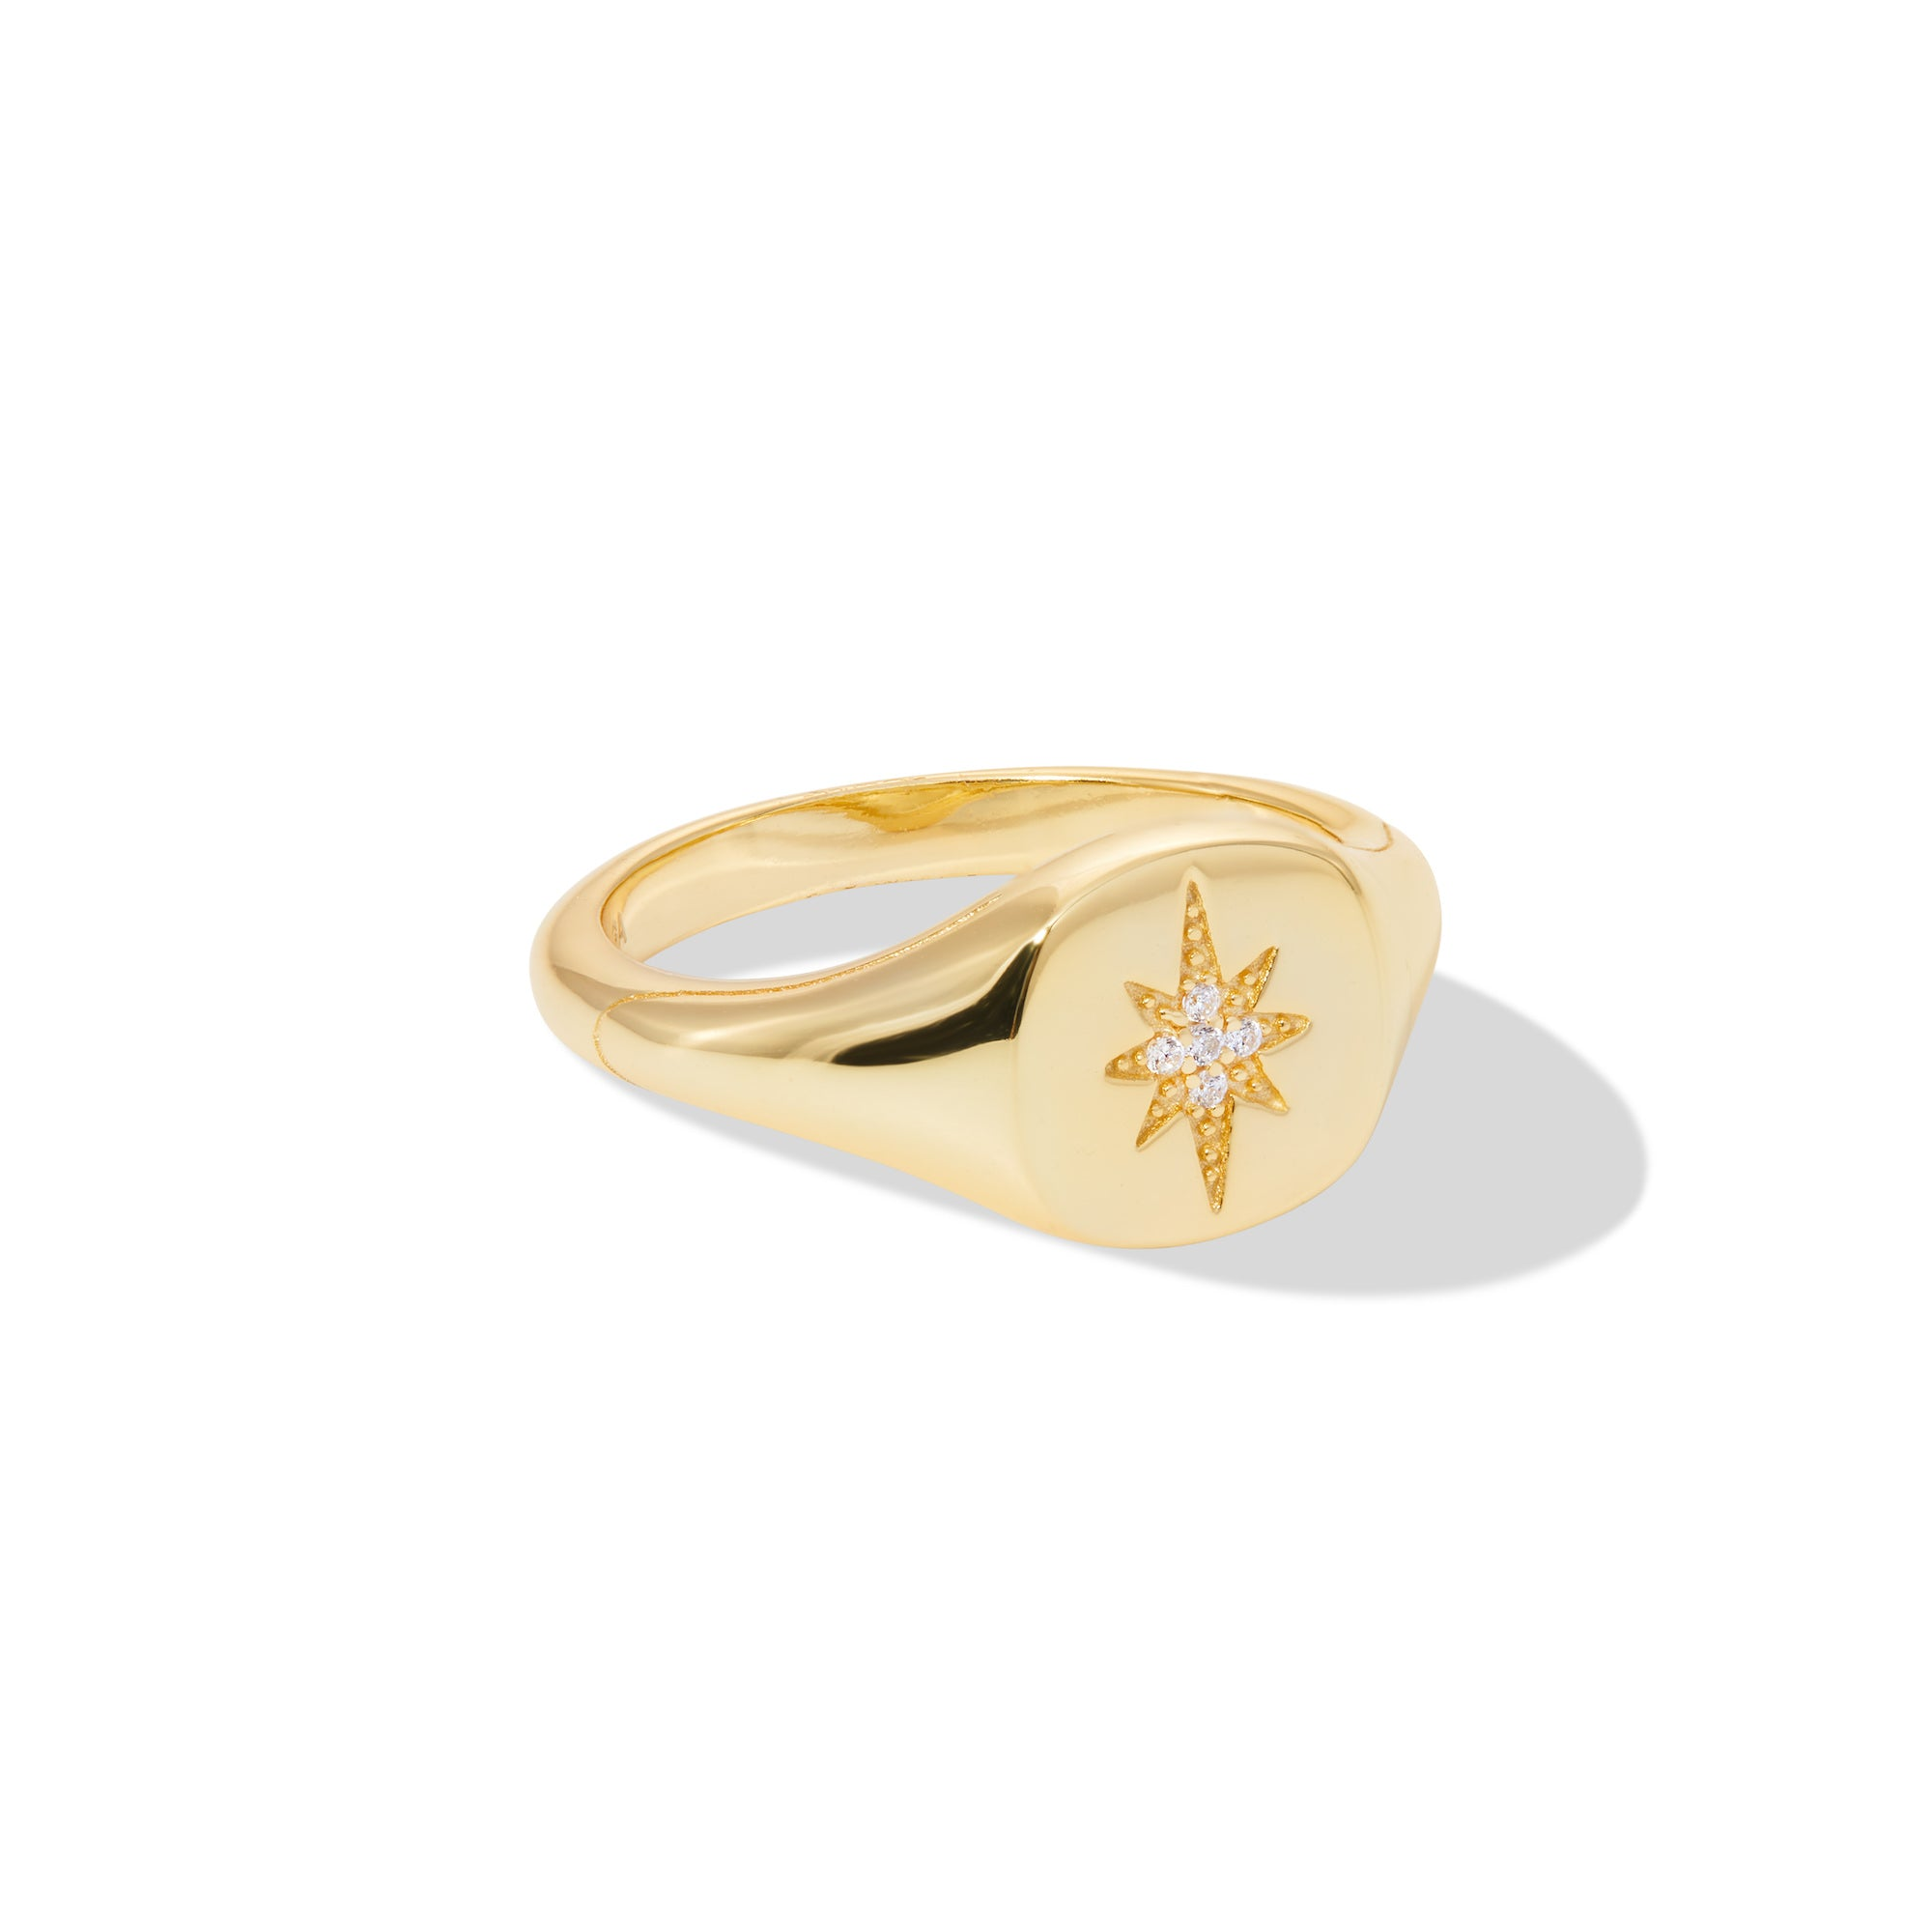 Starburst signet gold vermeil ring